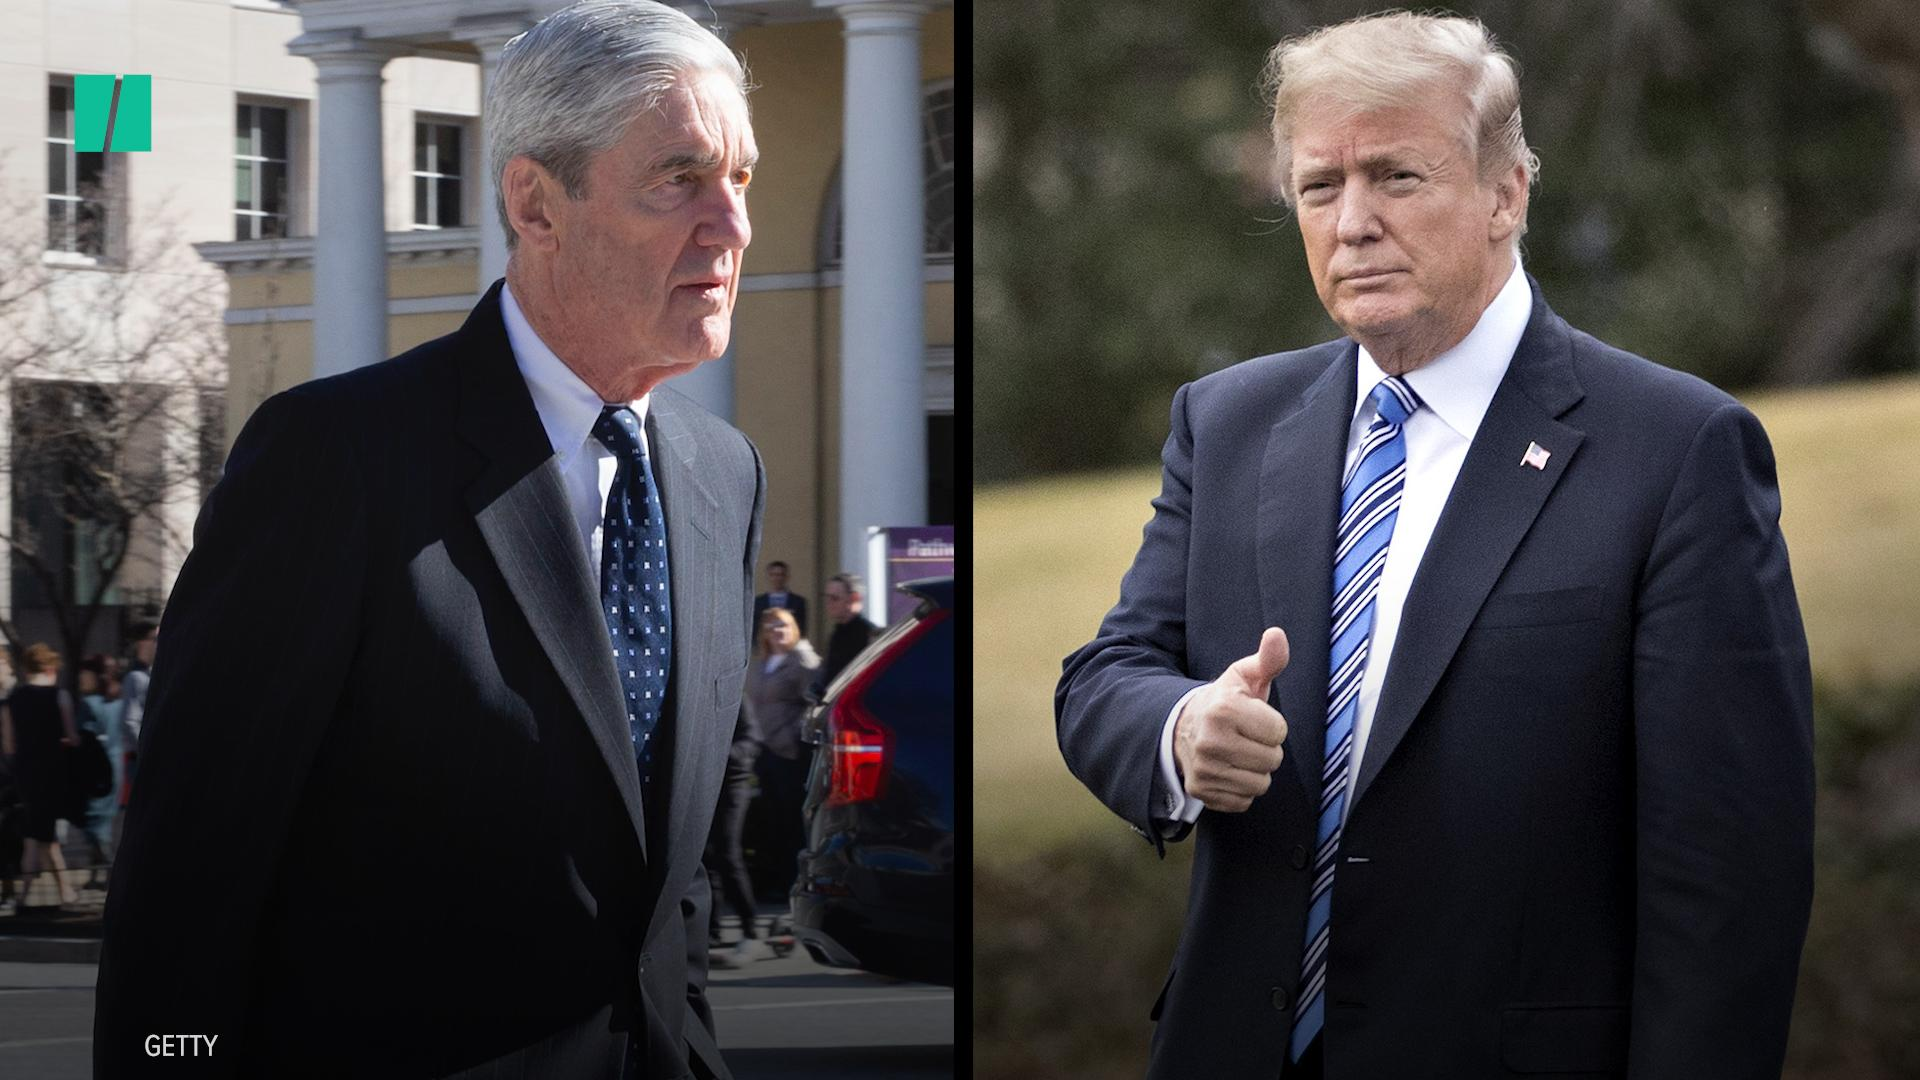 Preet Bharara: Mueller Aimed To 'Punt' To Congress, Barr Snagged Ball To Spin For Trump